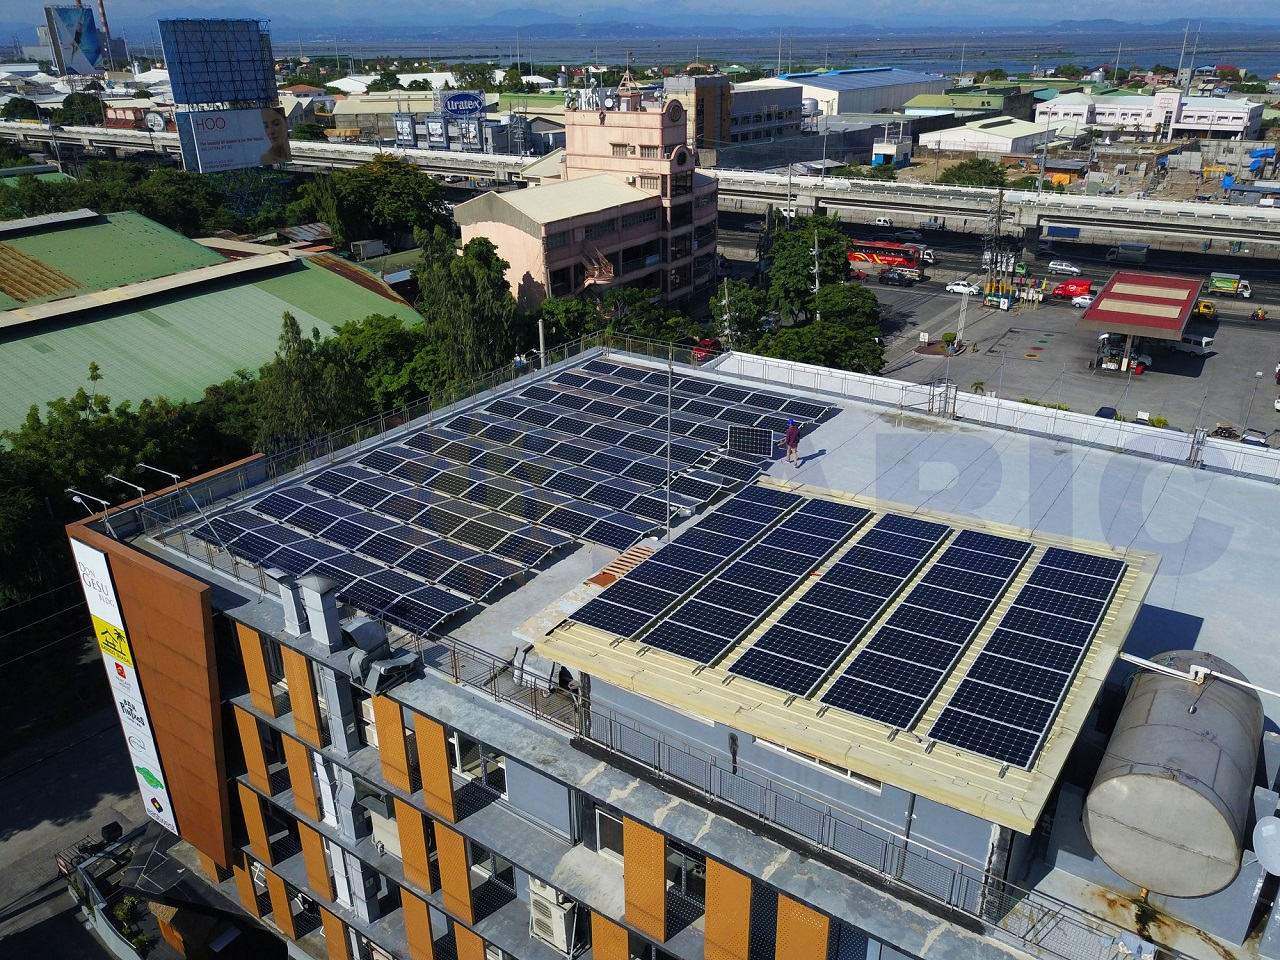 Don Gesu Building in Alabang, Philippines with solar panels on its roof